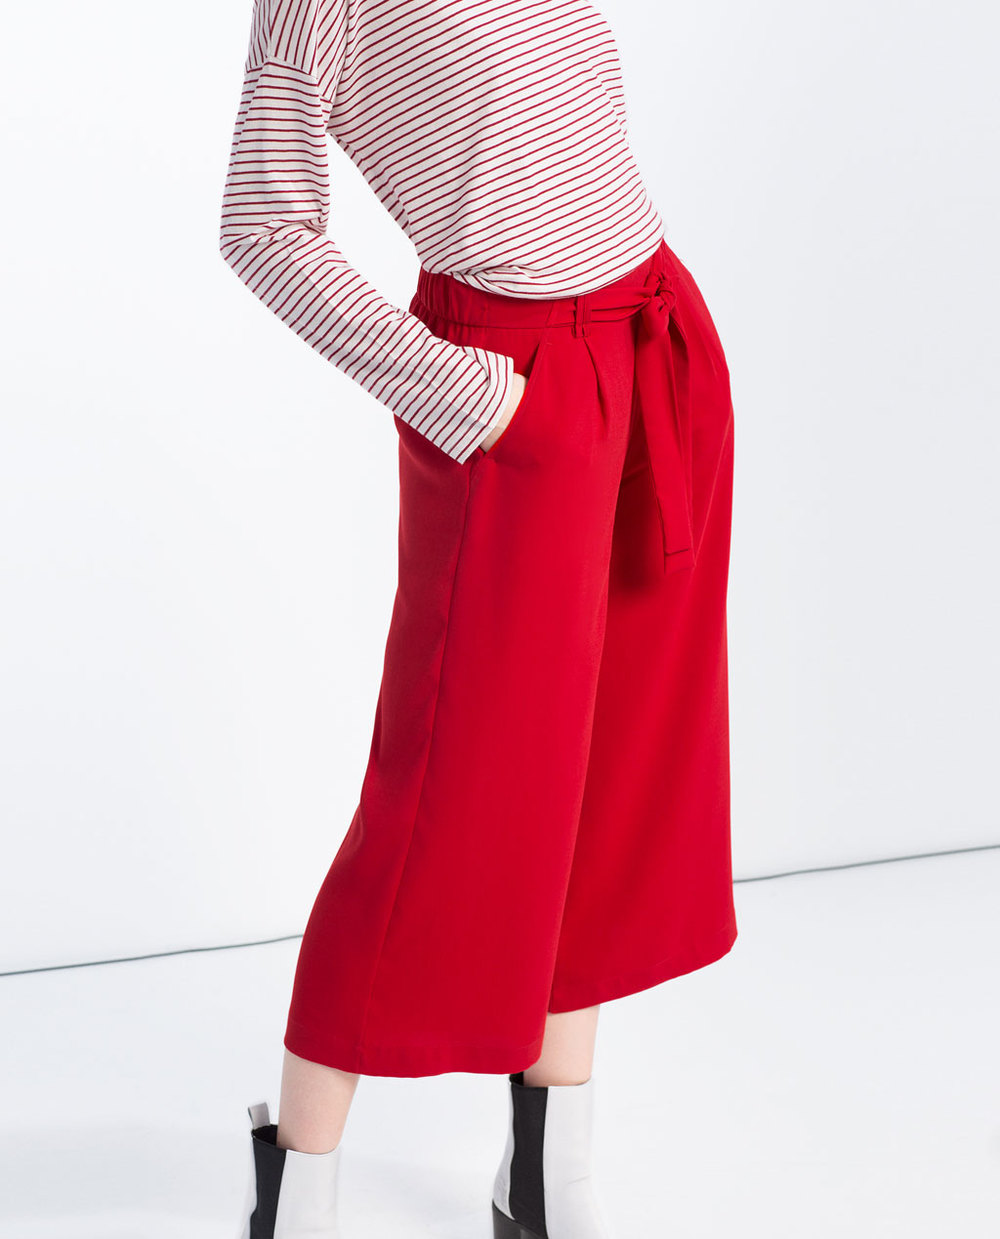 Stride out with these from  Zara  this spring with a classic breton t-shirt and white ankle boots.